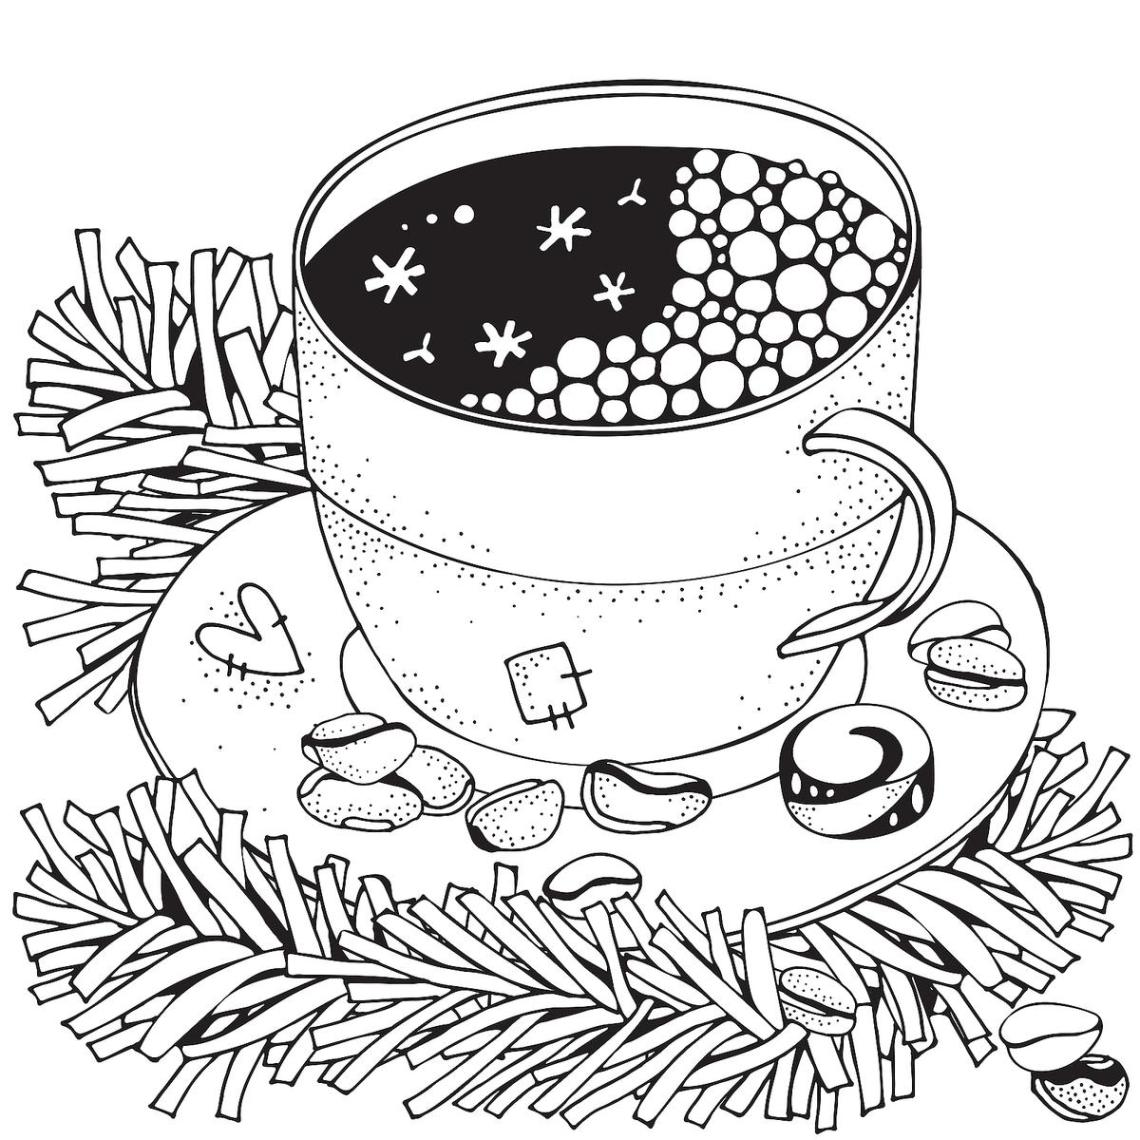 Winter Puzzle & Coloring Pages: Printable Winter-Themed ... | winter coloring pages for adults